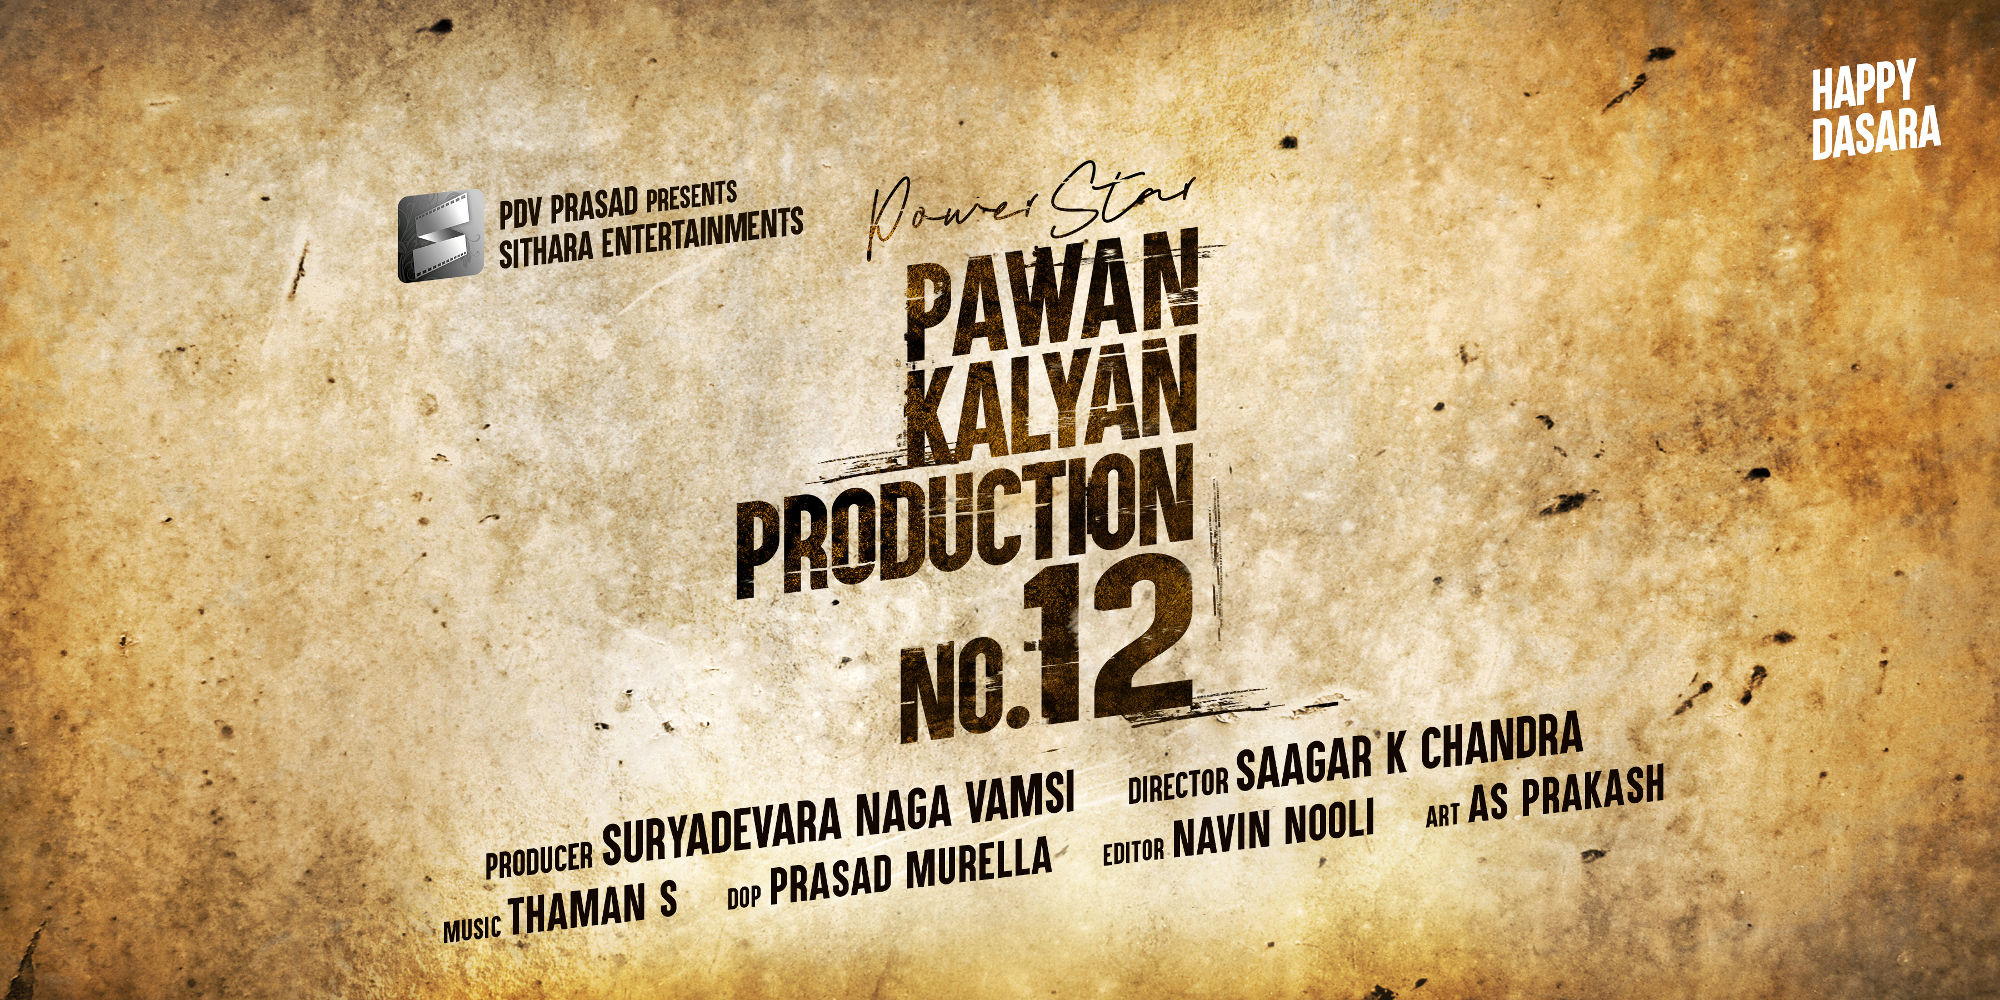 Powerstar Pawan Kalyan and Sithara Entertainments Production No 12 Film Announcement